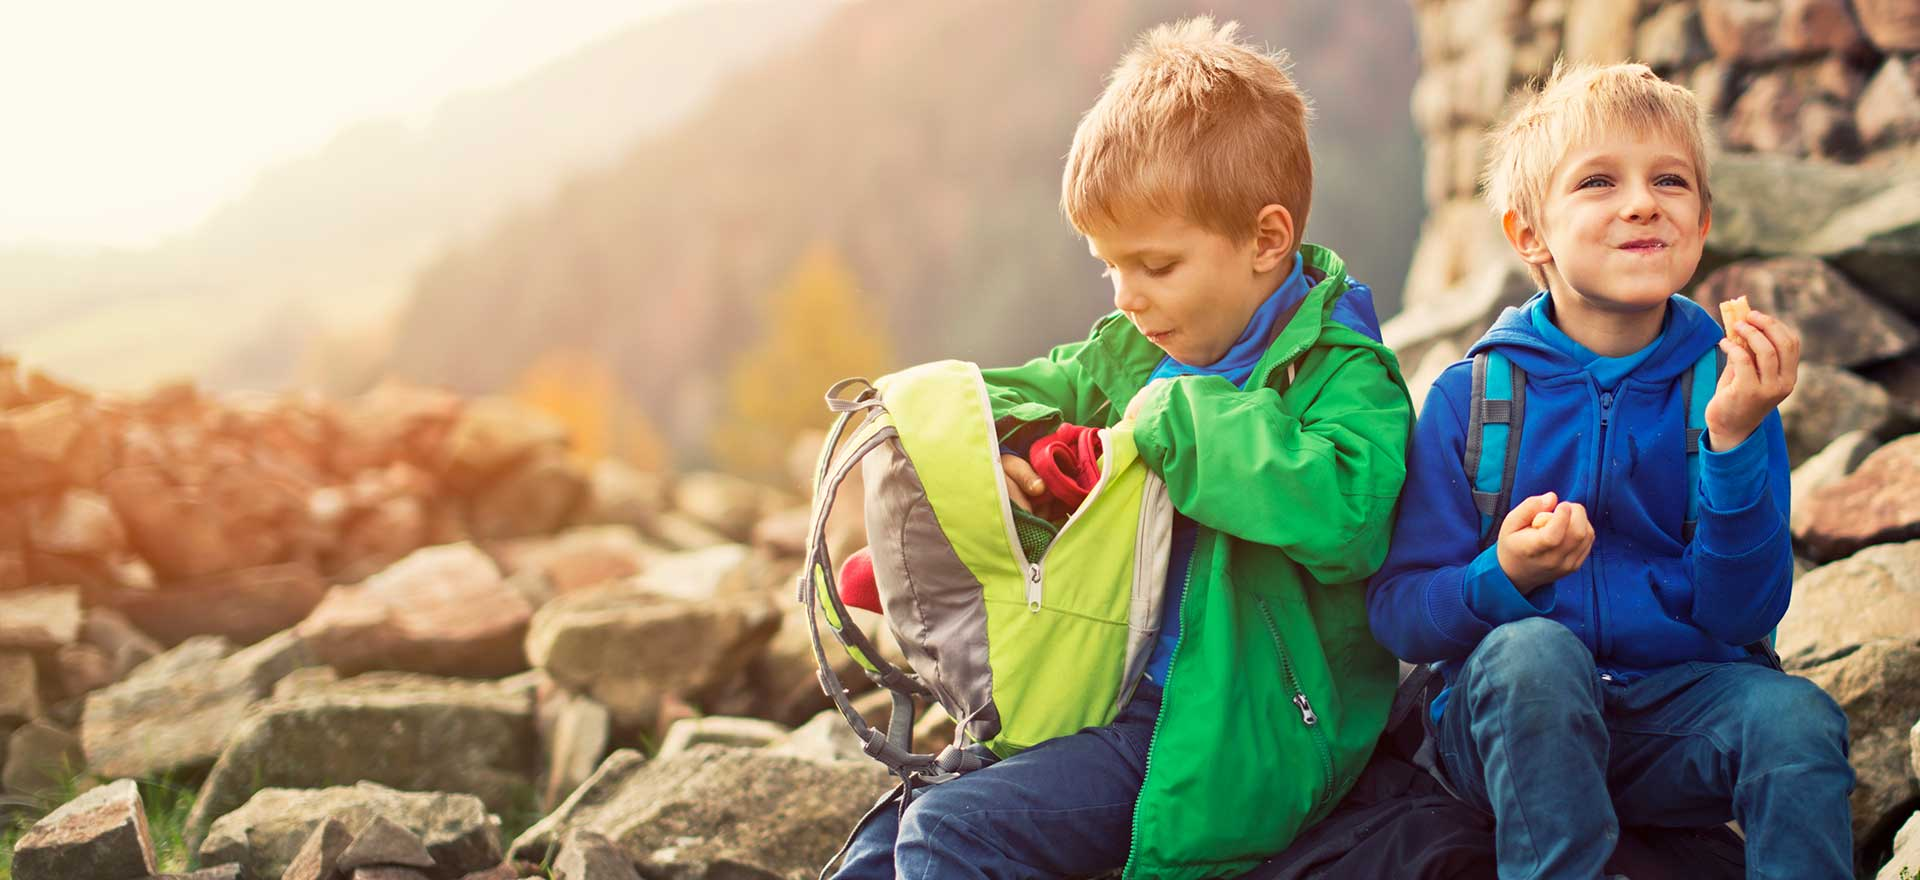 2 boys sitting on a mountain side. 1 is smiling and eating a snack while the other rummages through his backpack.